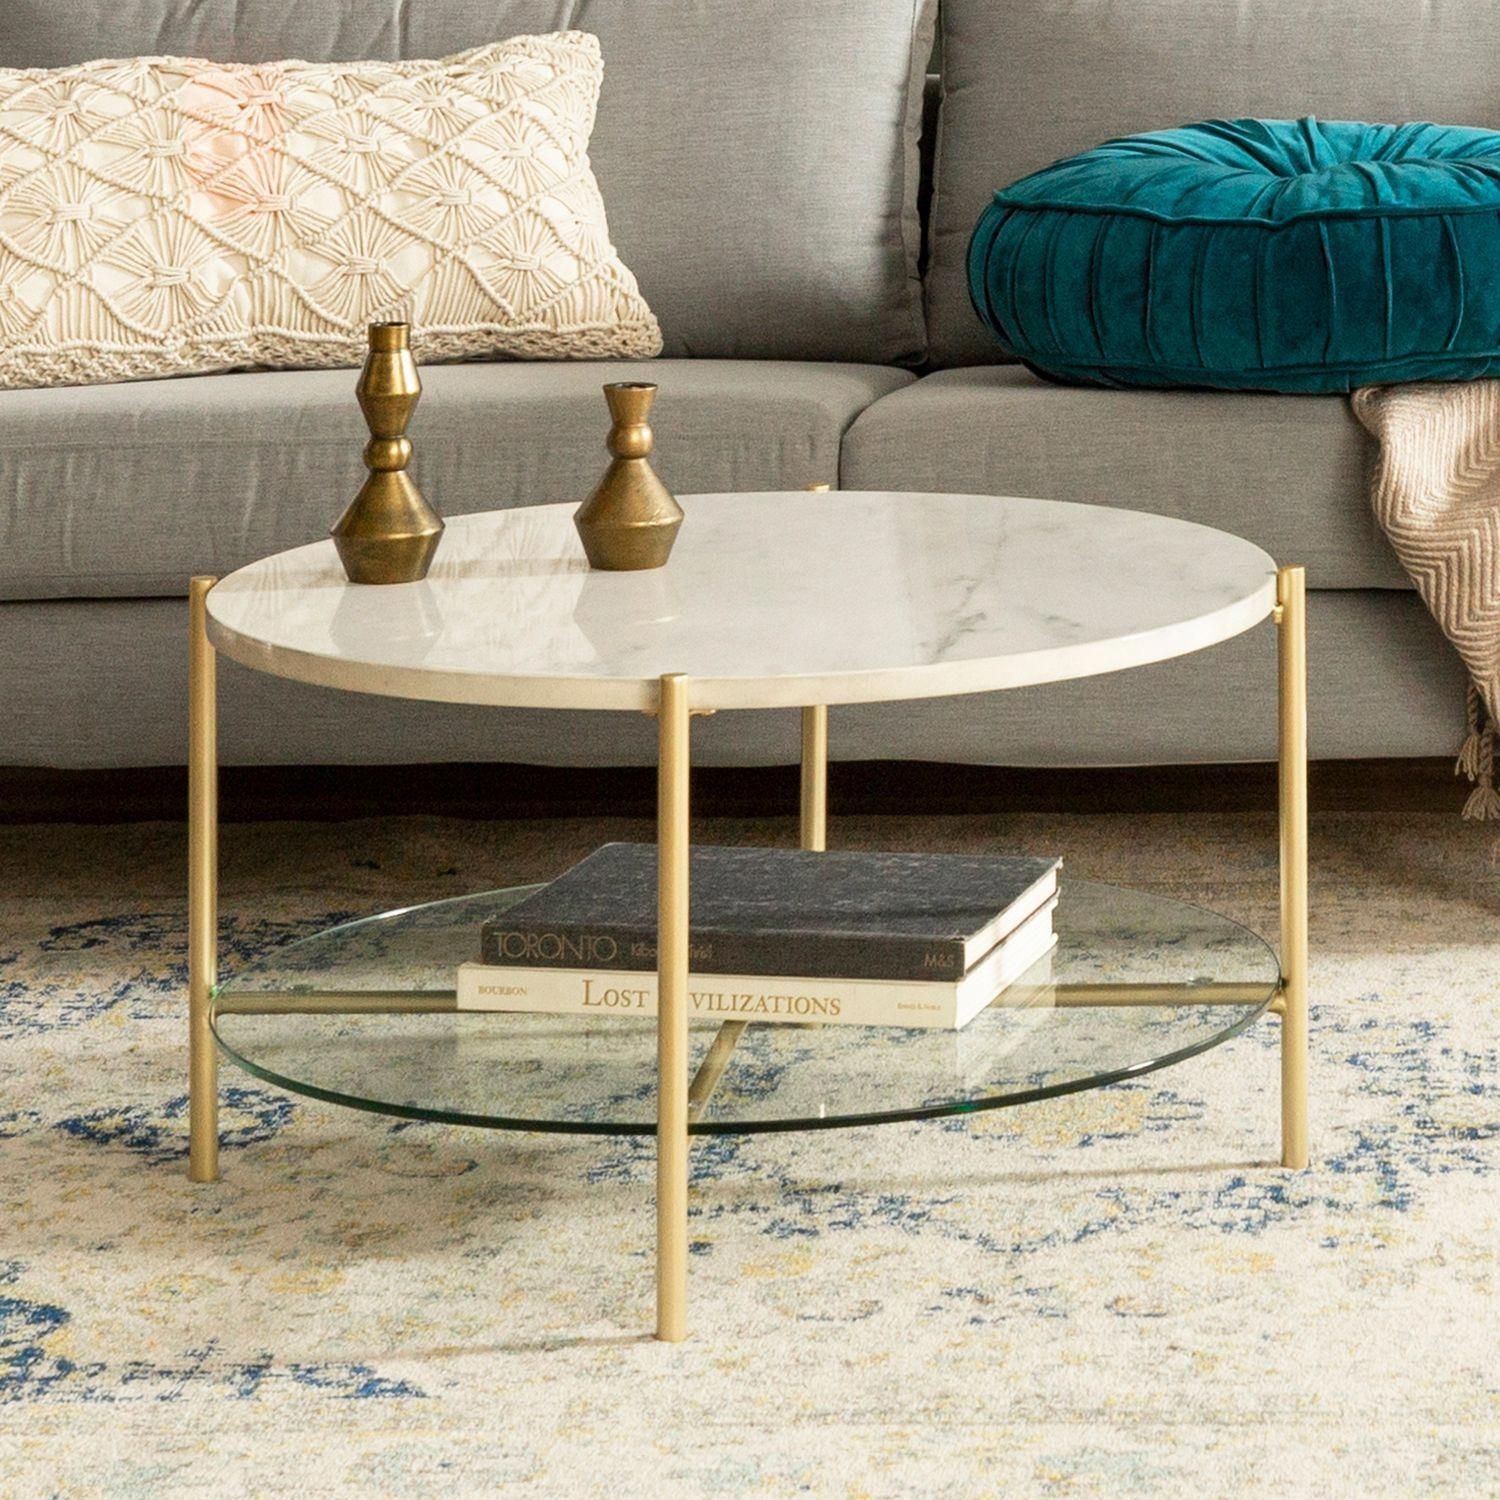 Home Decorating Online Tools Referral 8759475350 Round Gold Coffee Table Coffee Table Gold Coffee Table [ 1500 x 1500 Pixel ]